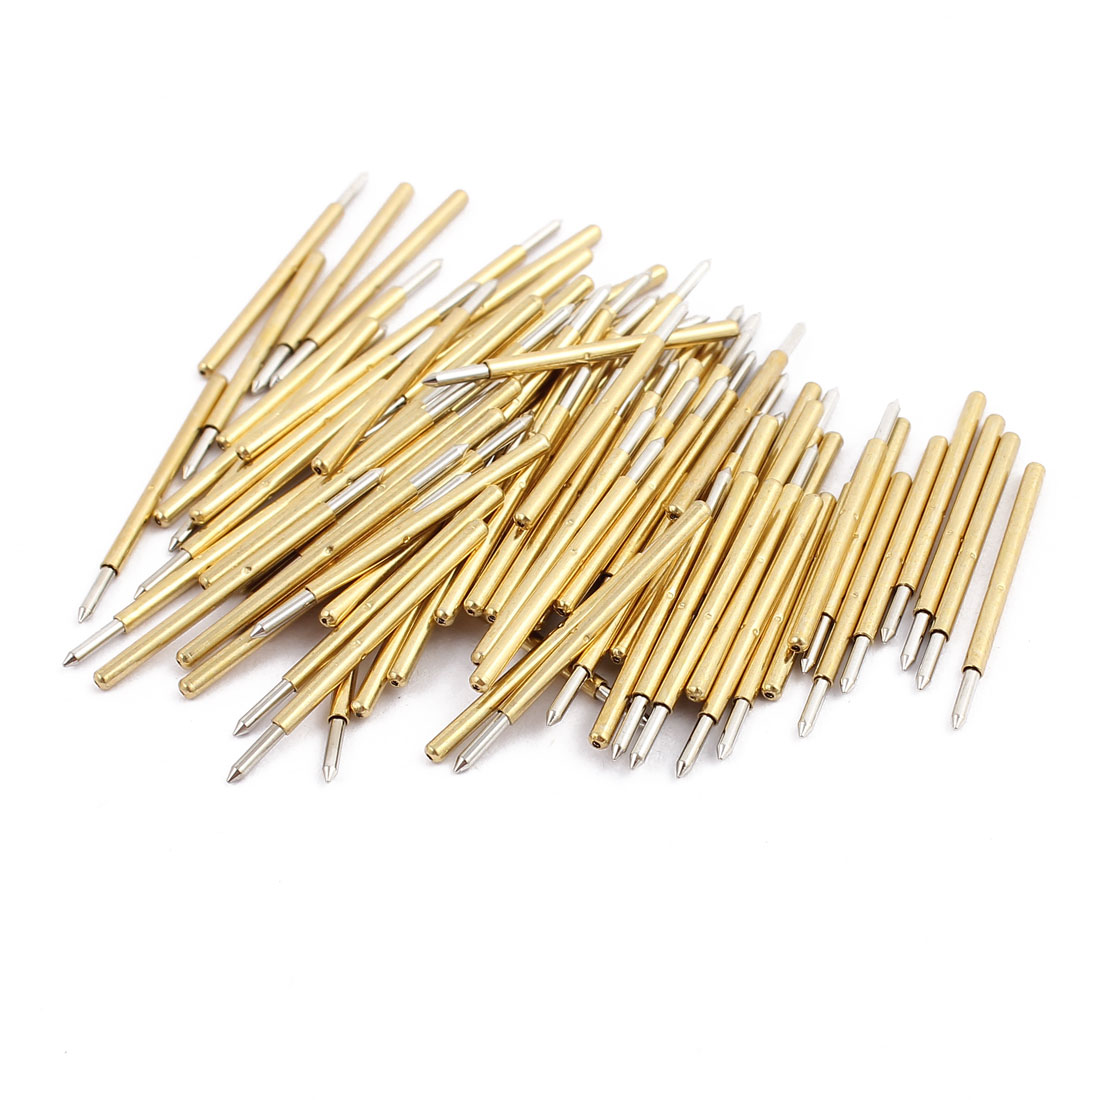 100pcs P160-B 1.36mm Dia 23.5mm Length Metal Spring Pressure Test Probe Needle